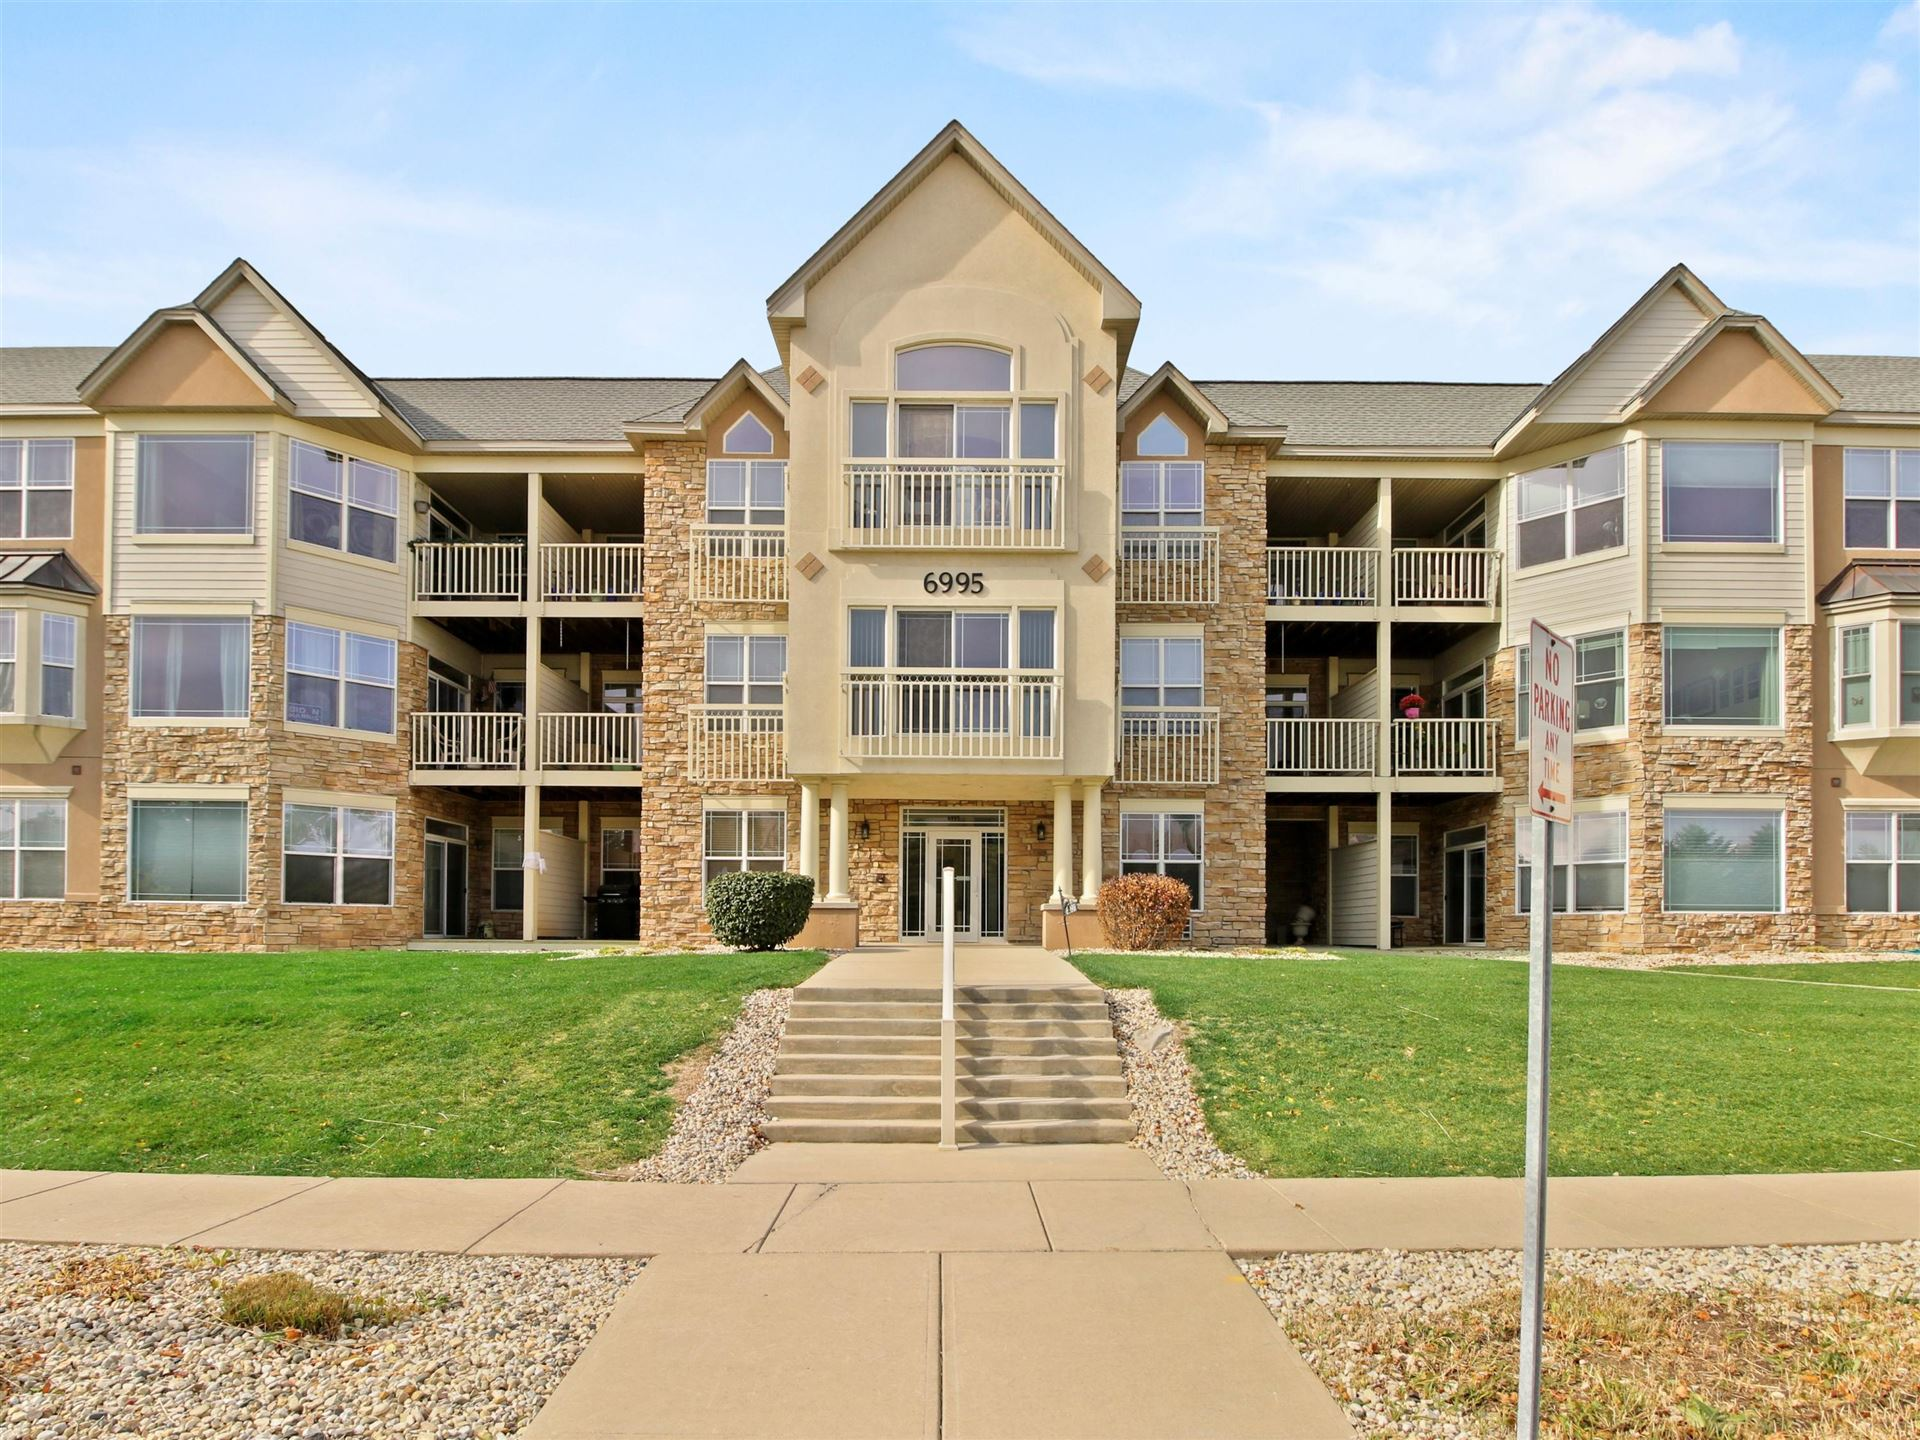 6995 S Riverwood Blvd #S-108, Franklin, WI 53132 - #: 1716148